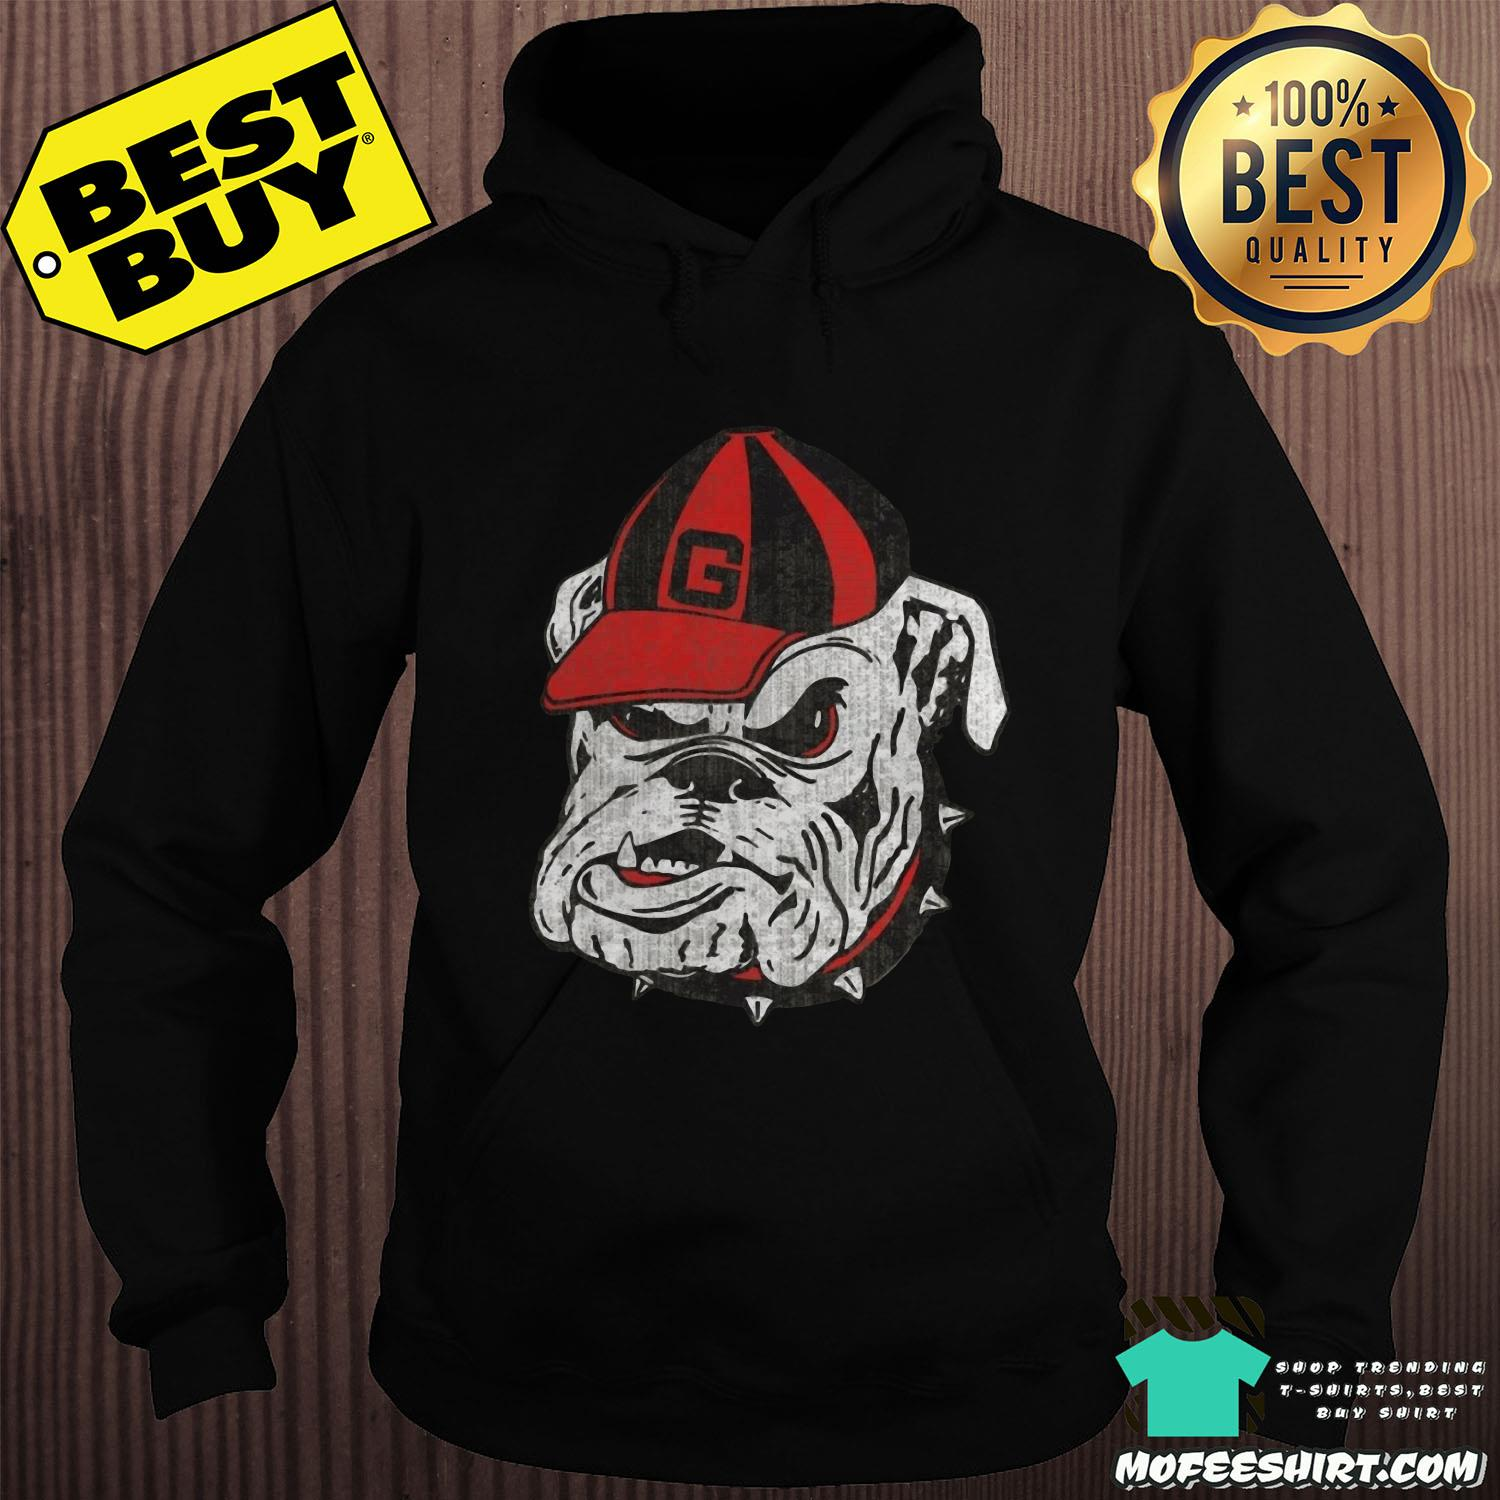 georgia bulldogs the good bad t ugly Hoodie - Georgia Bulldogs The Good Bad T Ugly Shirt